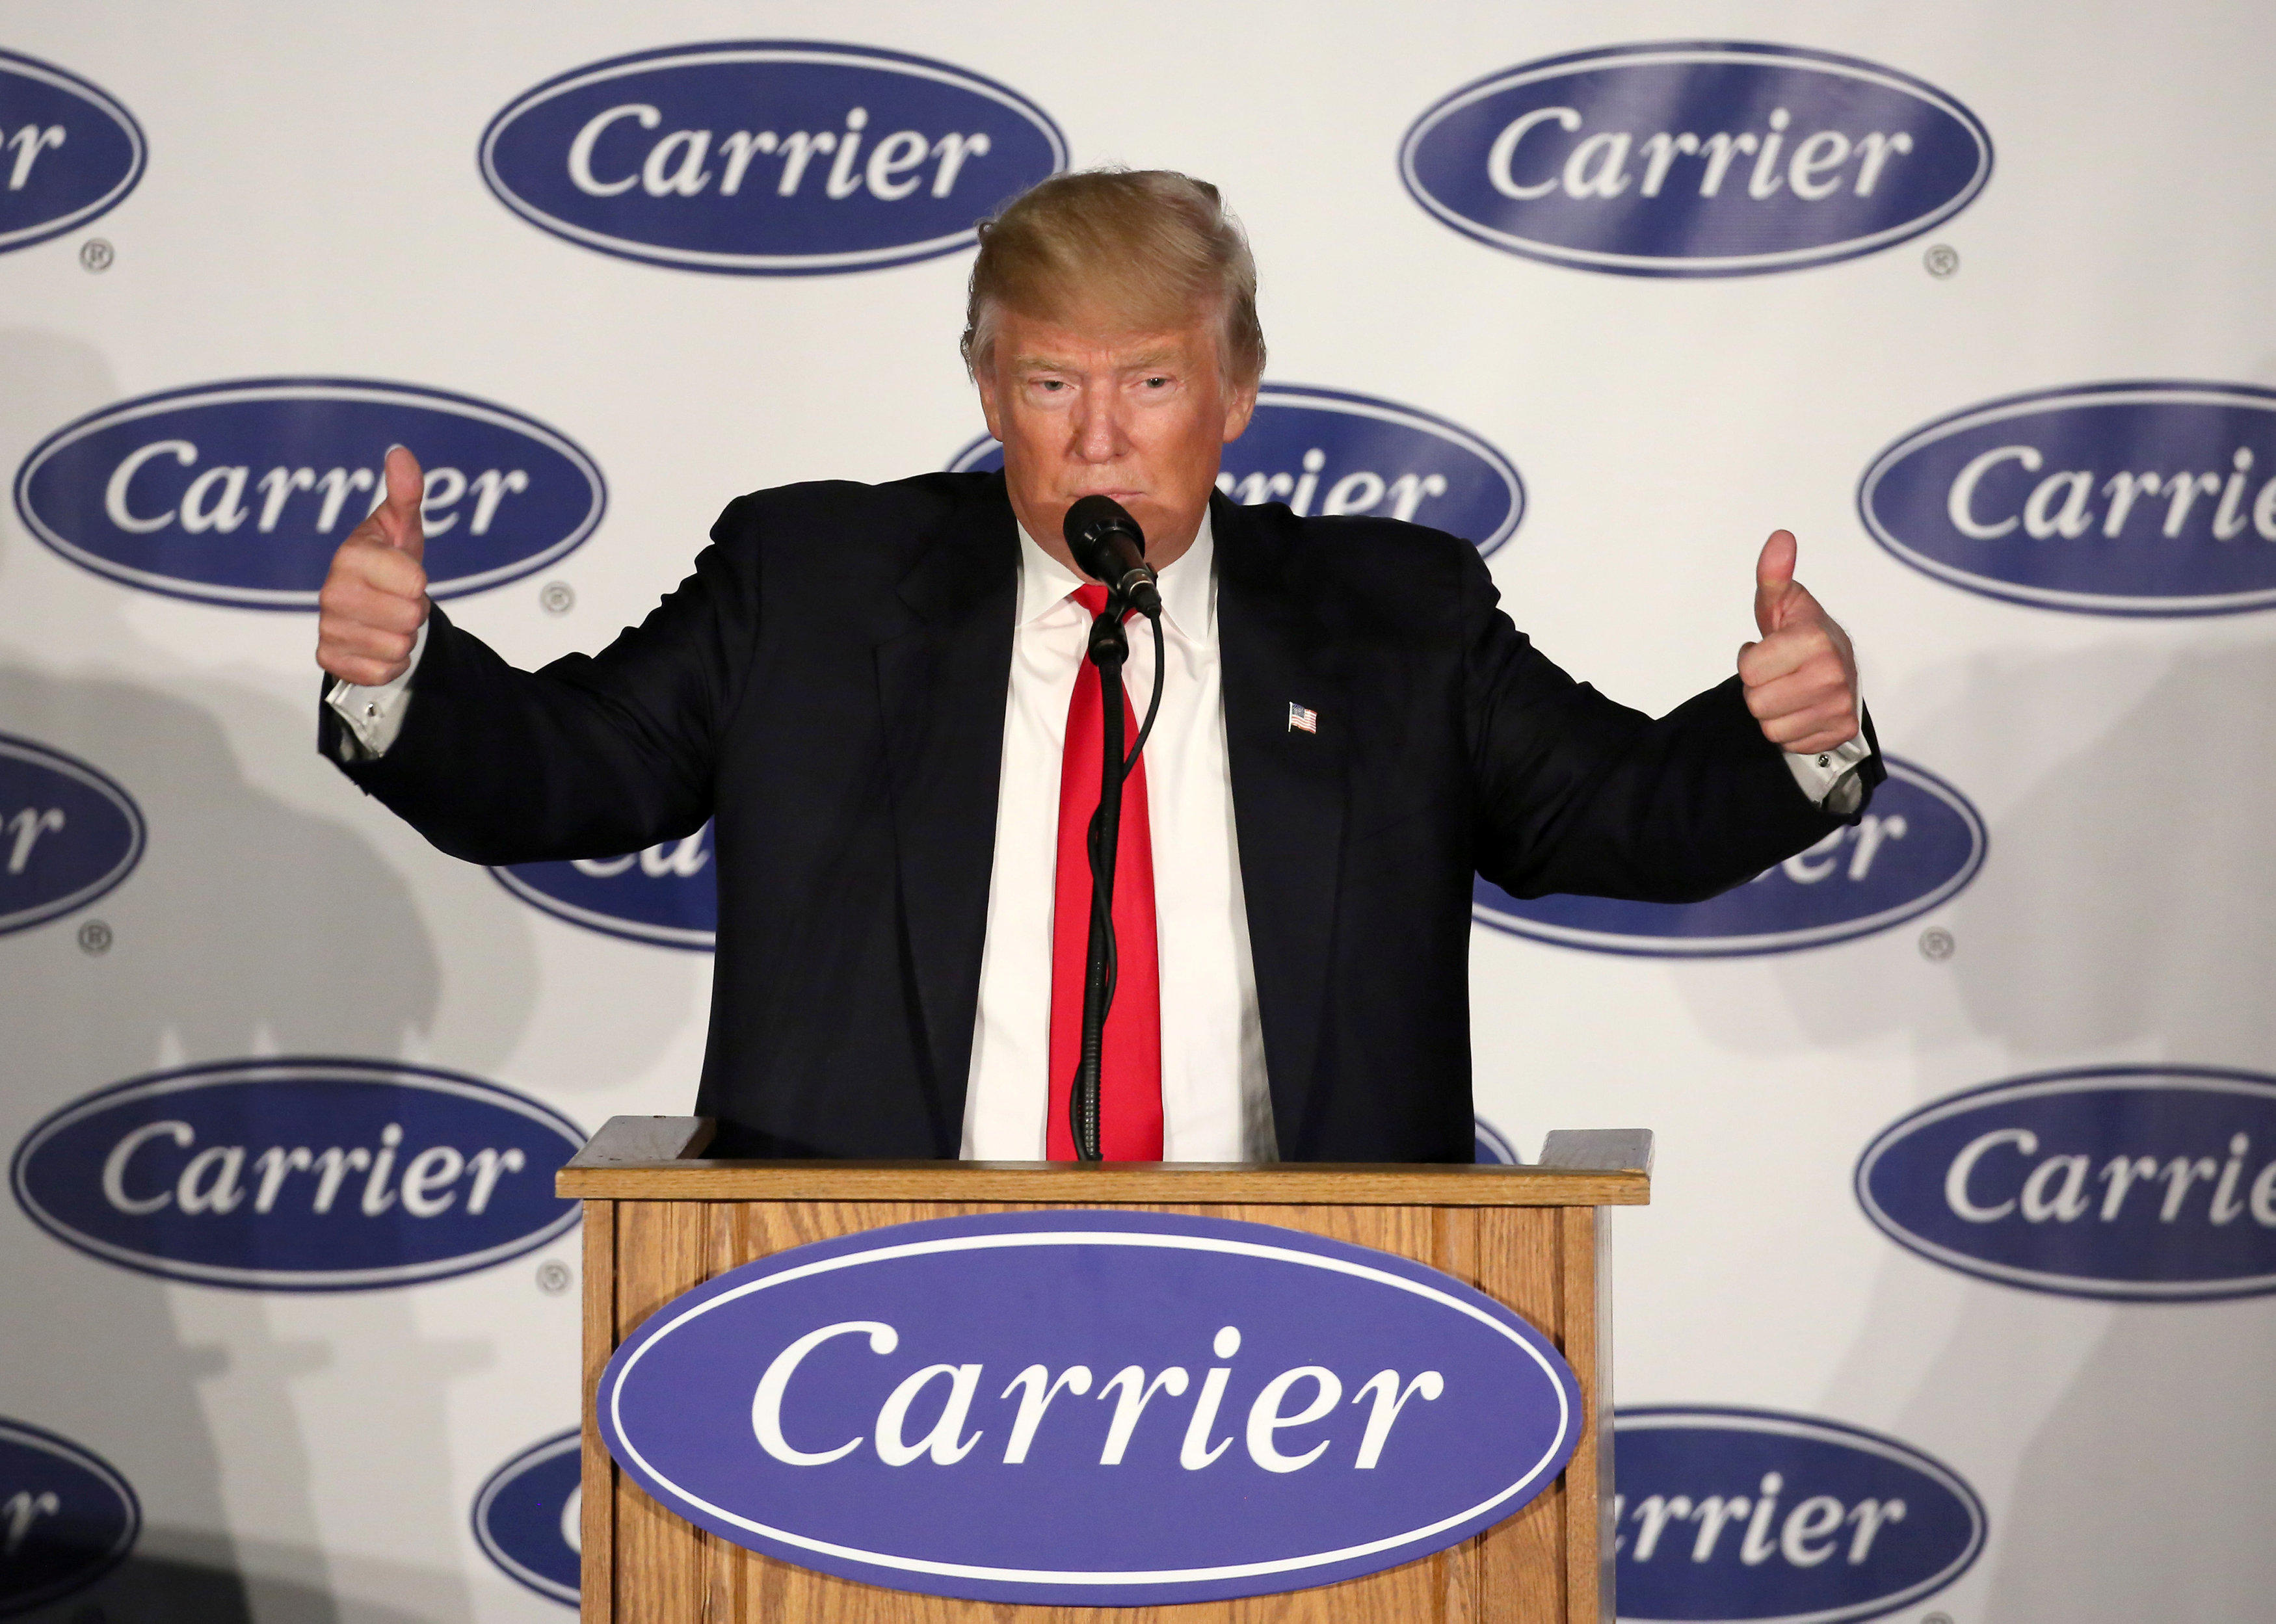 cbsnews.com - Dean Reynolds - Carrier workers facing layoffs feel betrayed by Trump